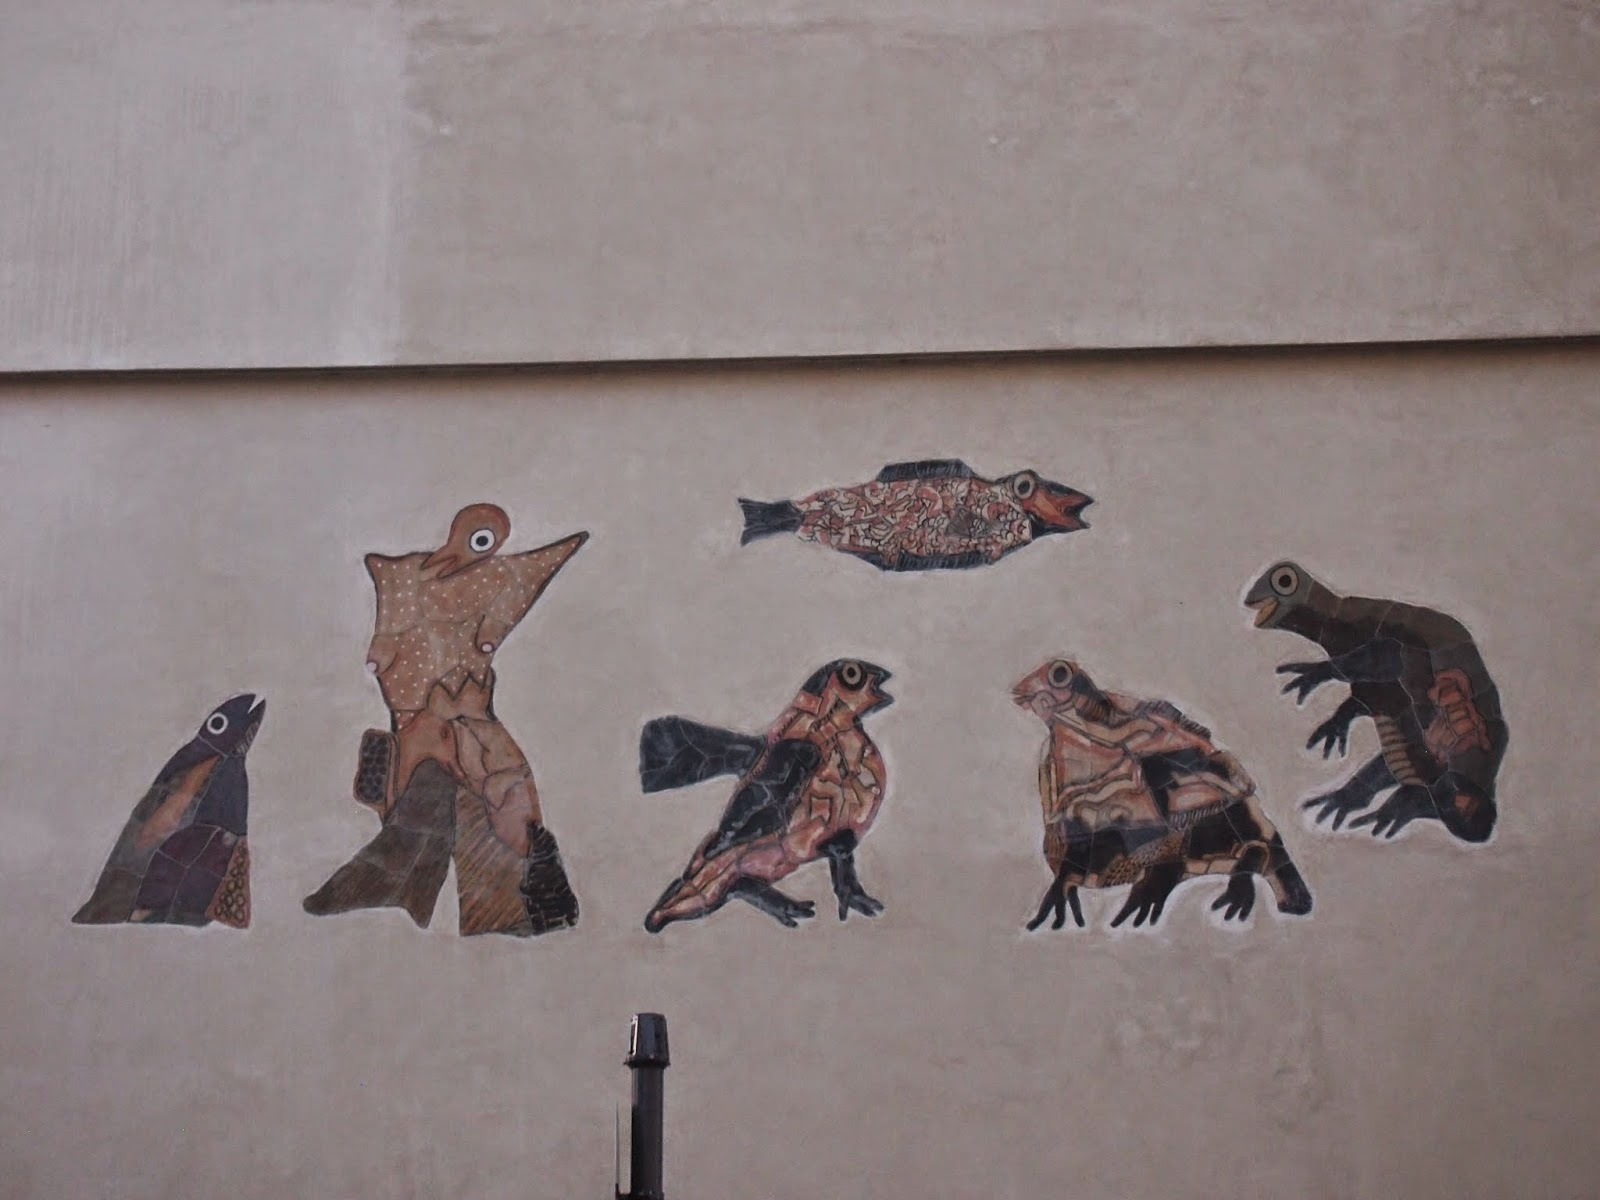 strange looking animals painted in earth tones on a building in copenhagen